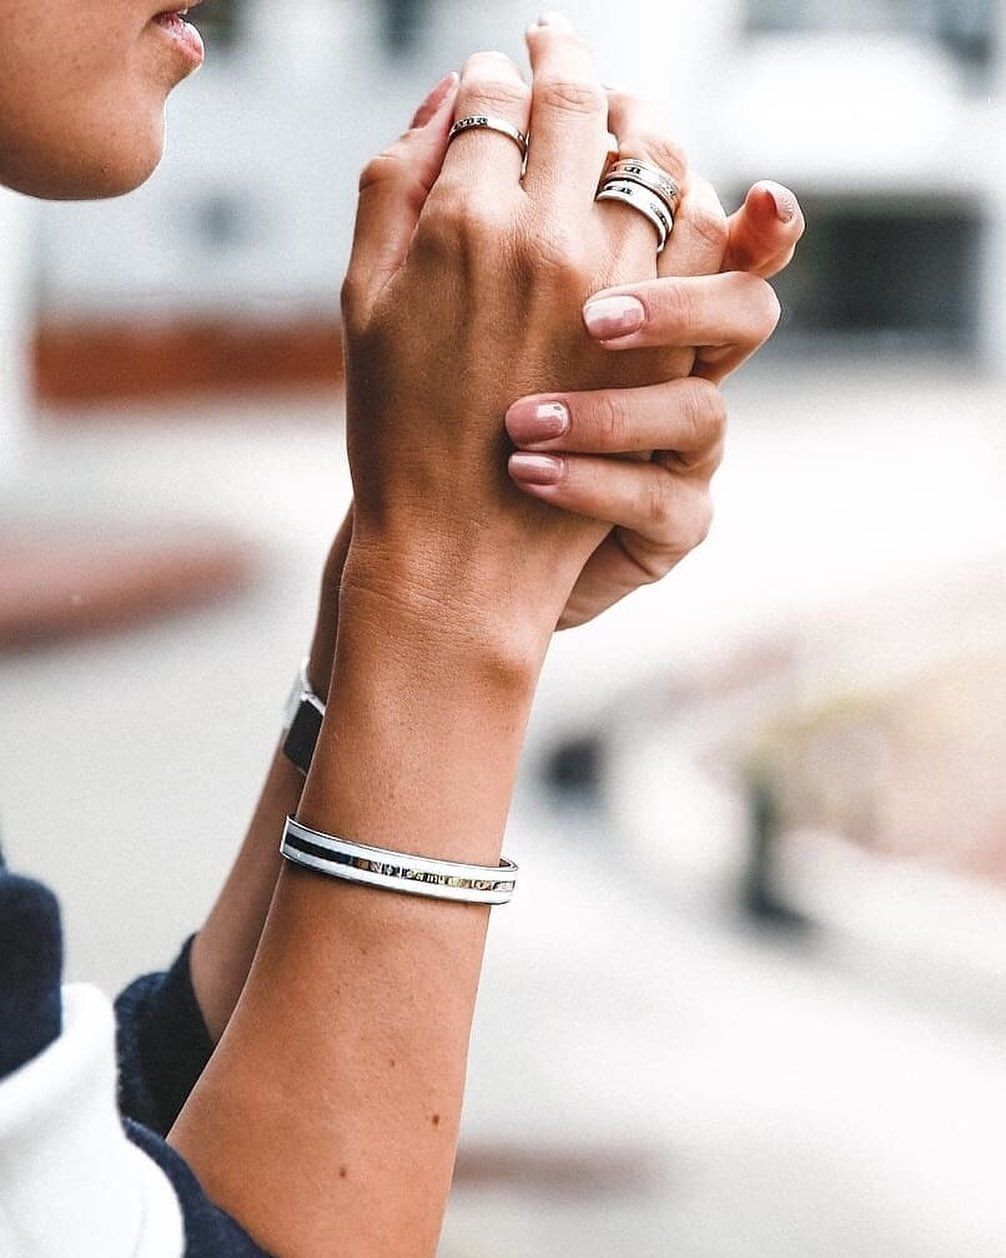 Important Tips You Should Know Before Buying Jewelry